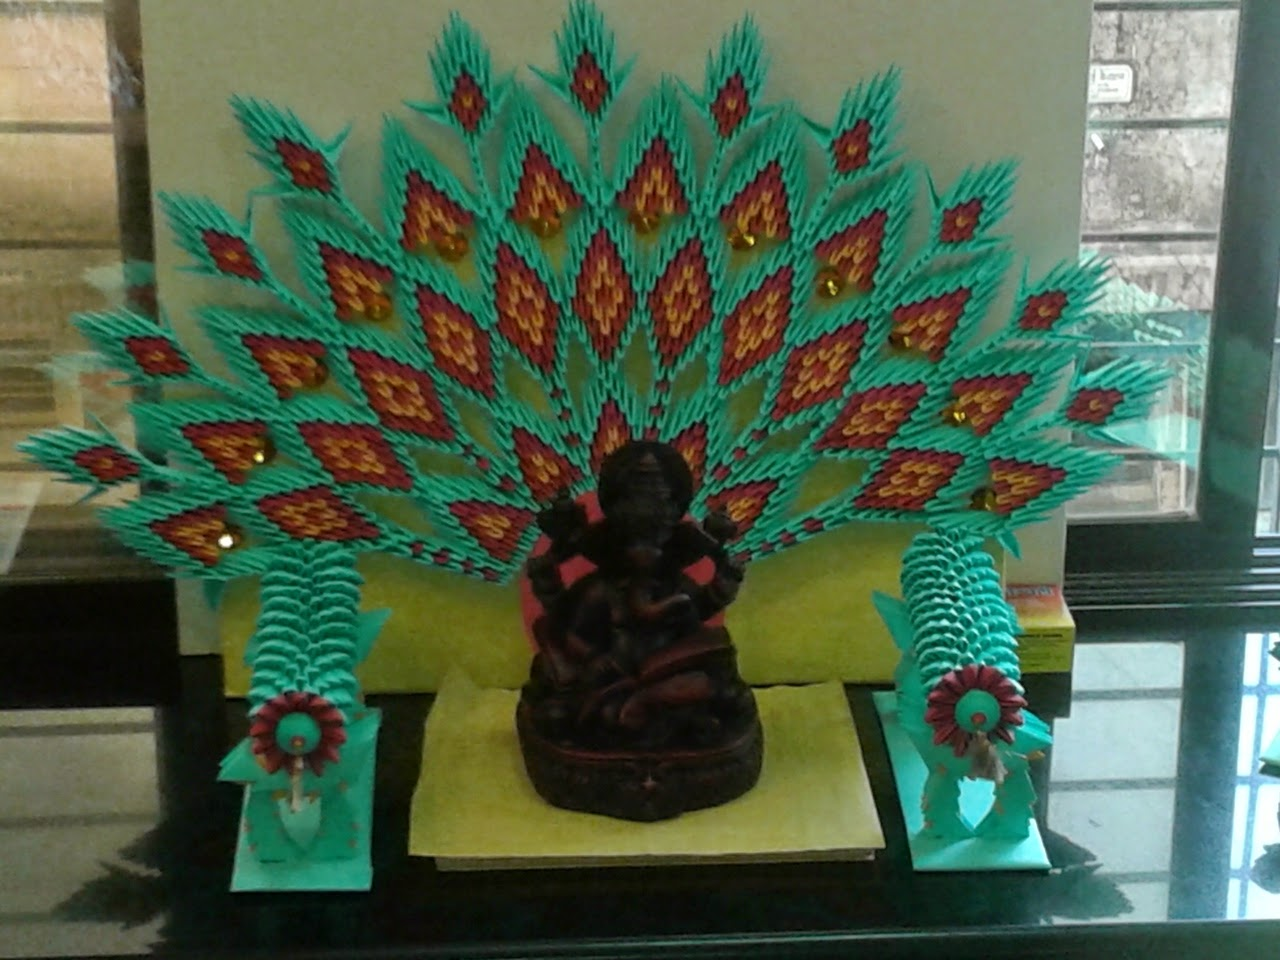 Paper Craft Ganpati Decoration